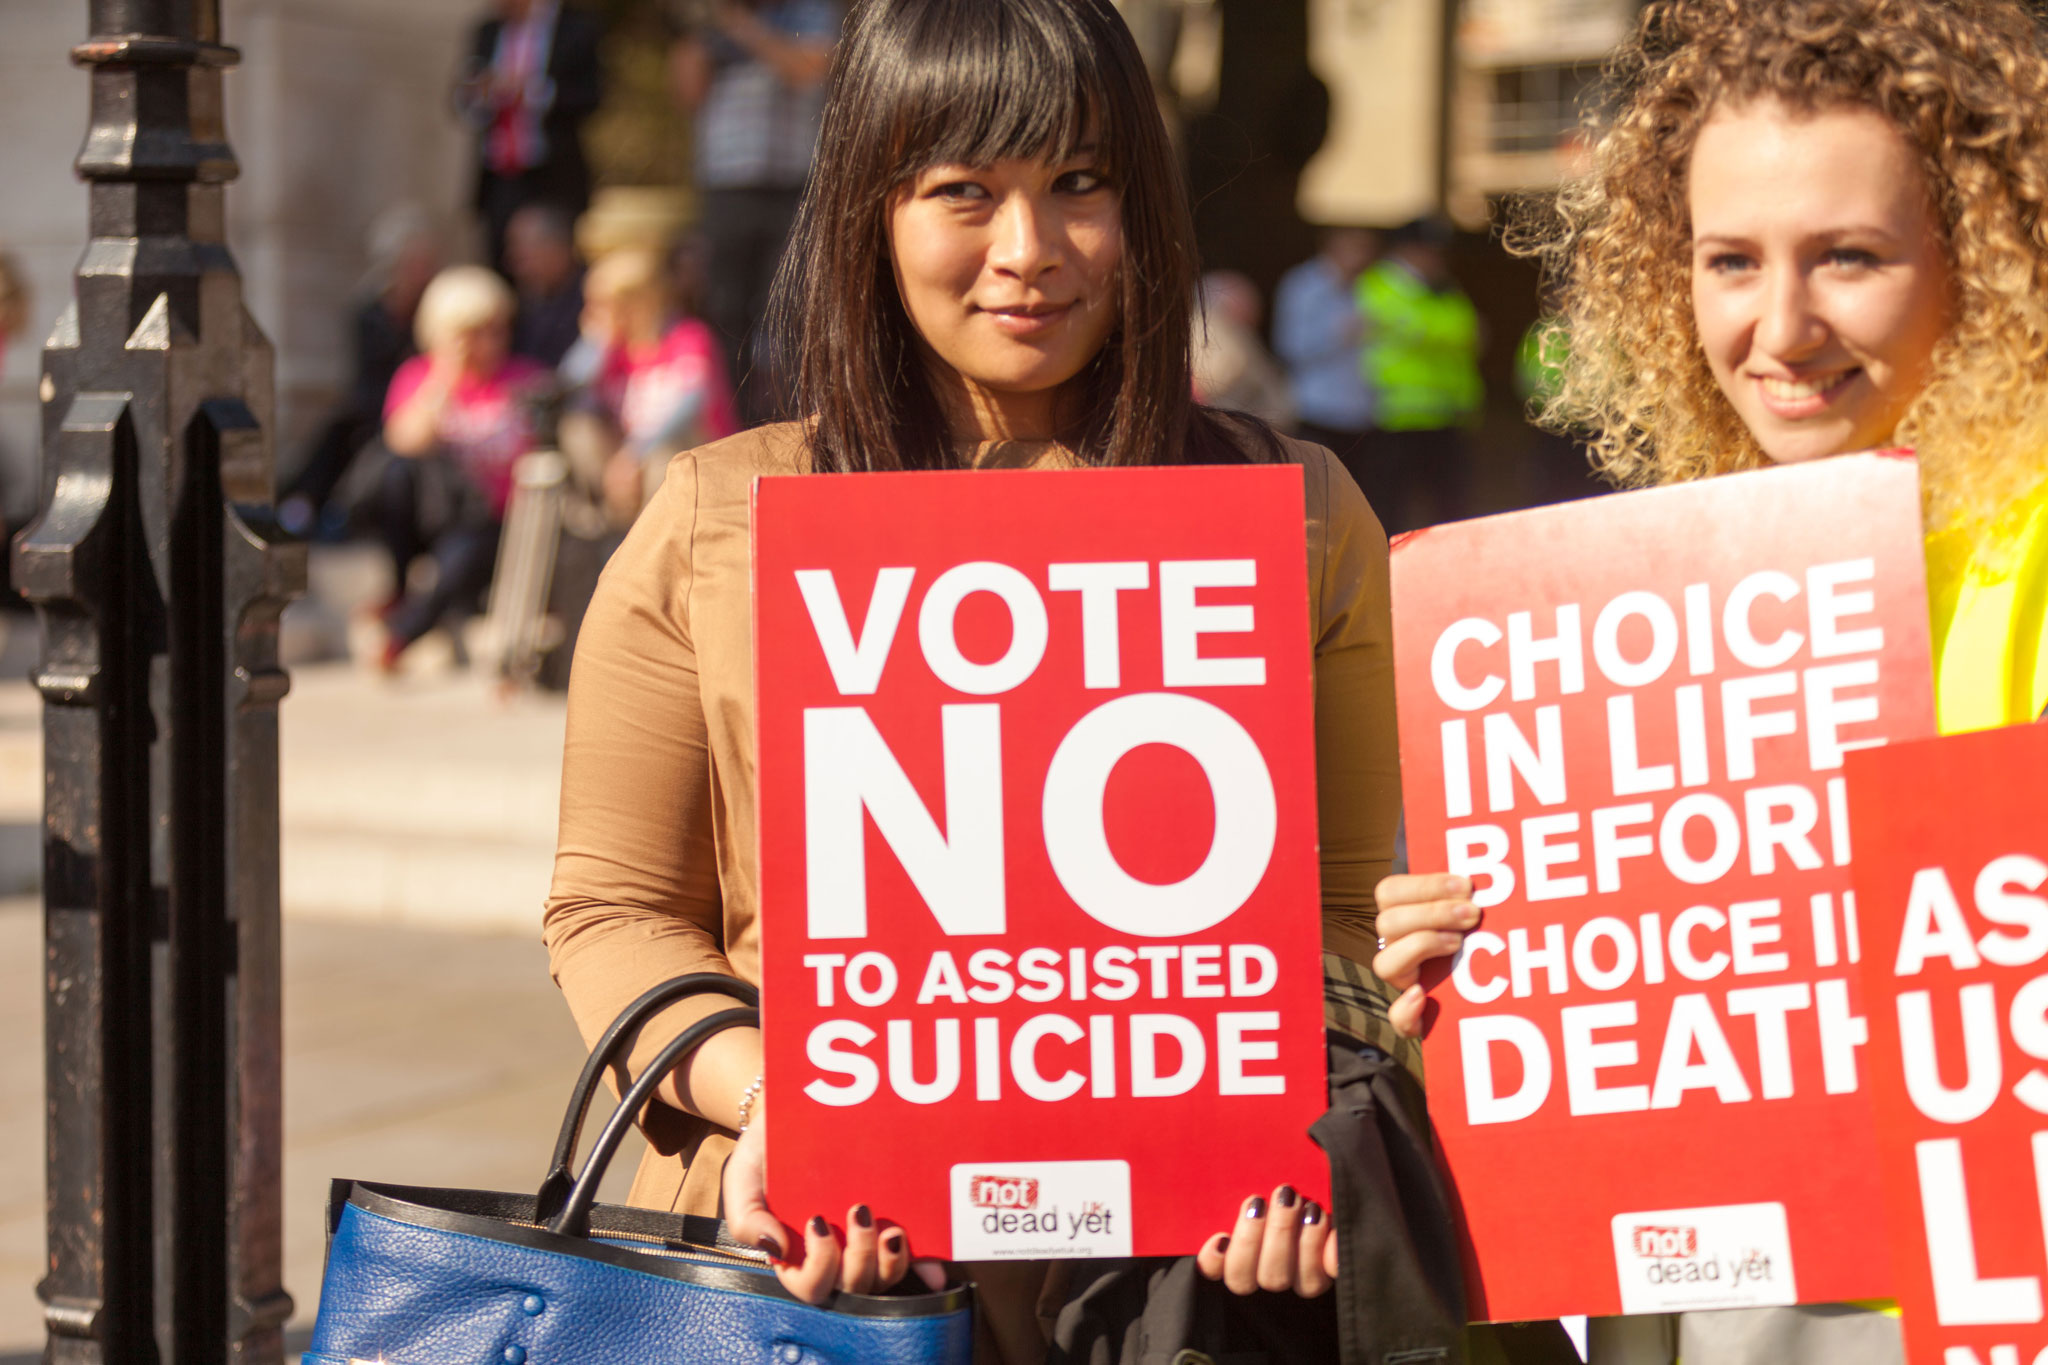 Two young women hold signs opposing doctor-assisted suicide at a protest held by Not Dead Yet UK.